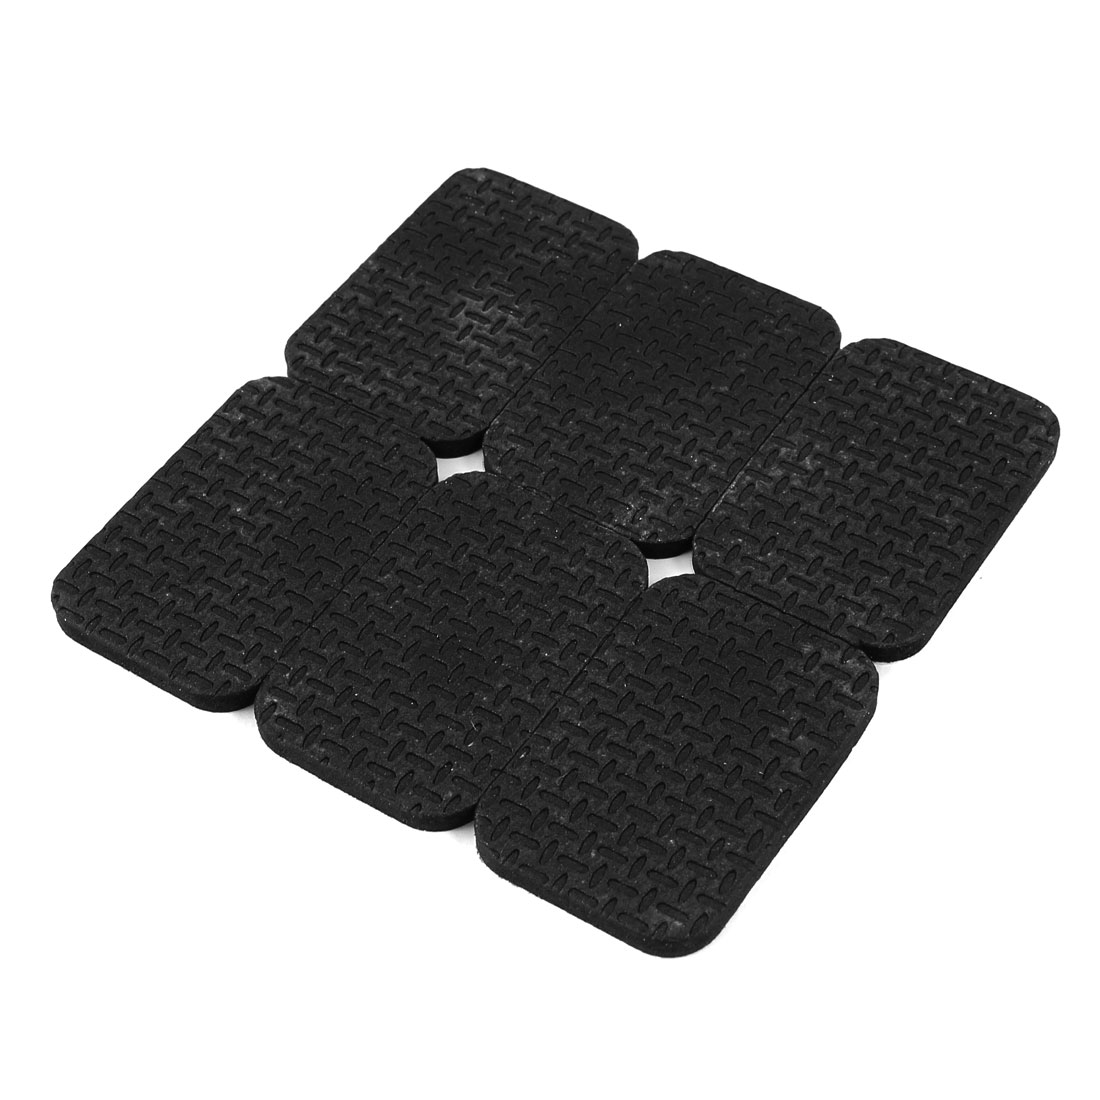 6 Pcs Rubber Floor Furniture Self Adhesive Pads Protector